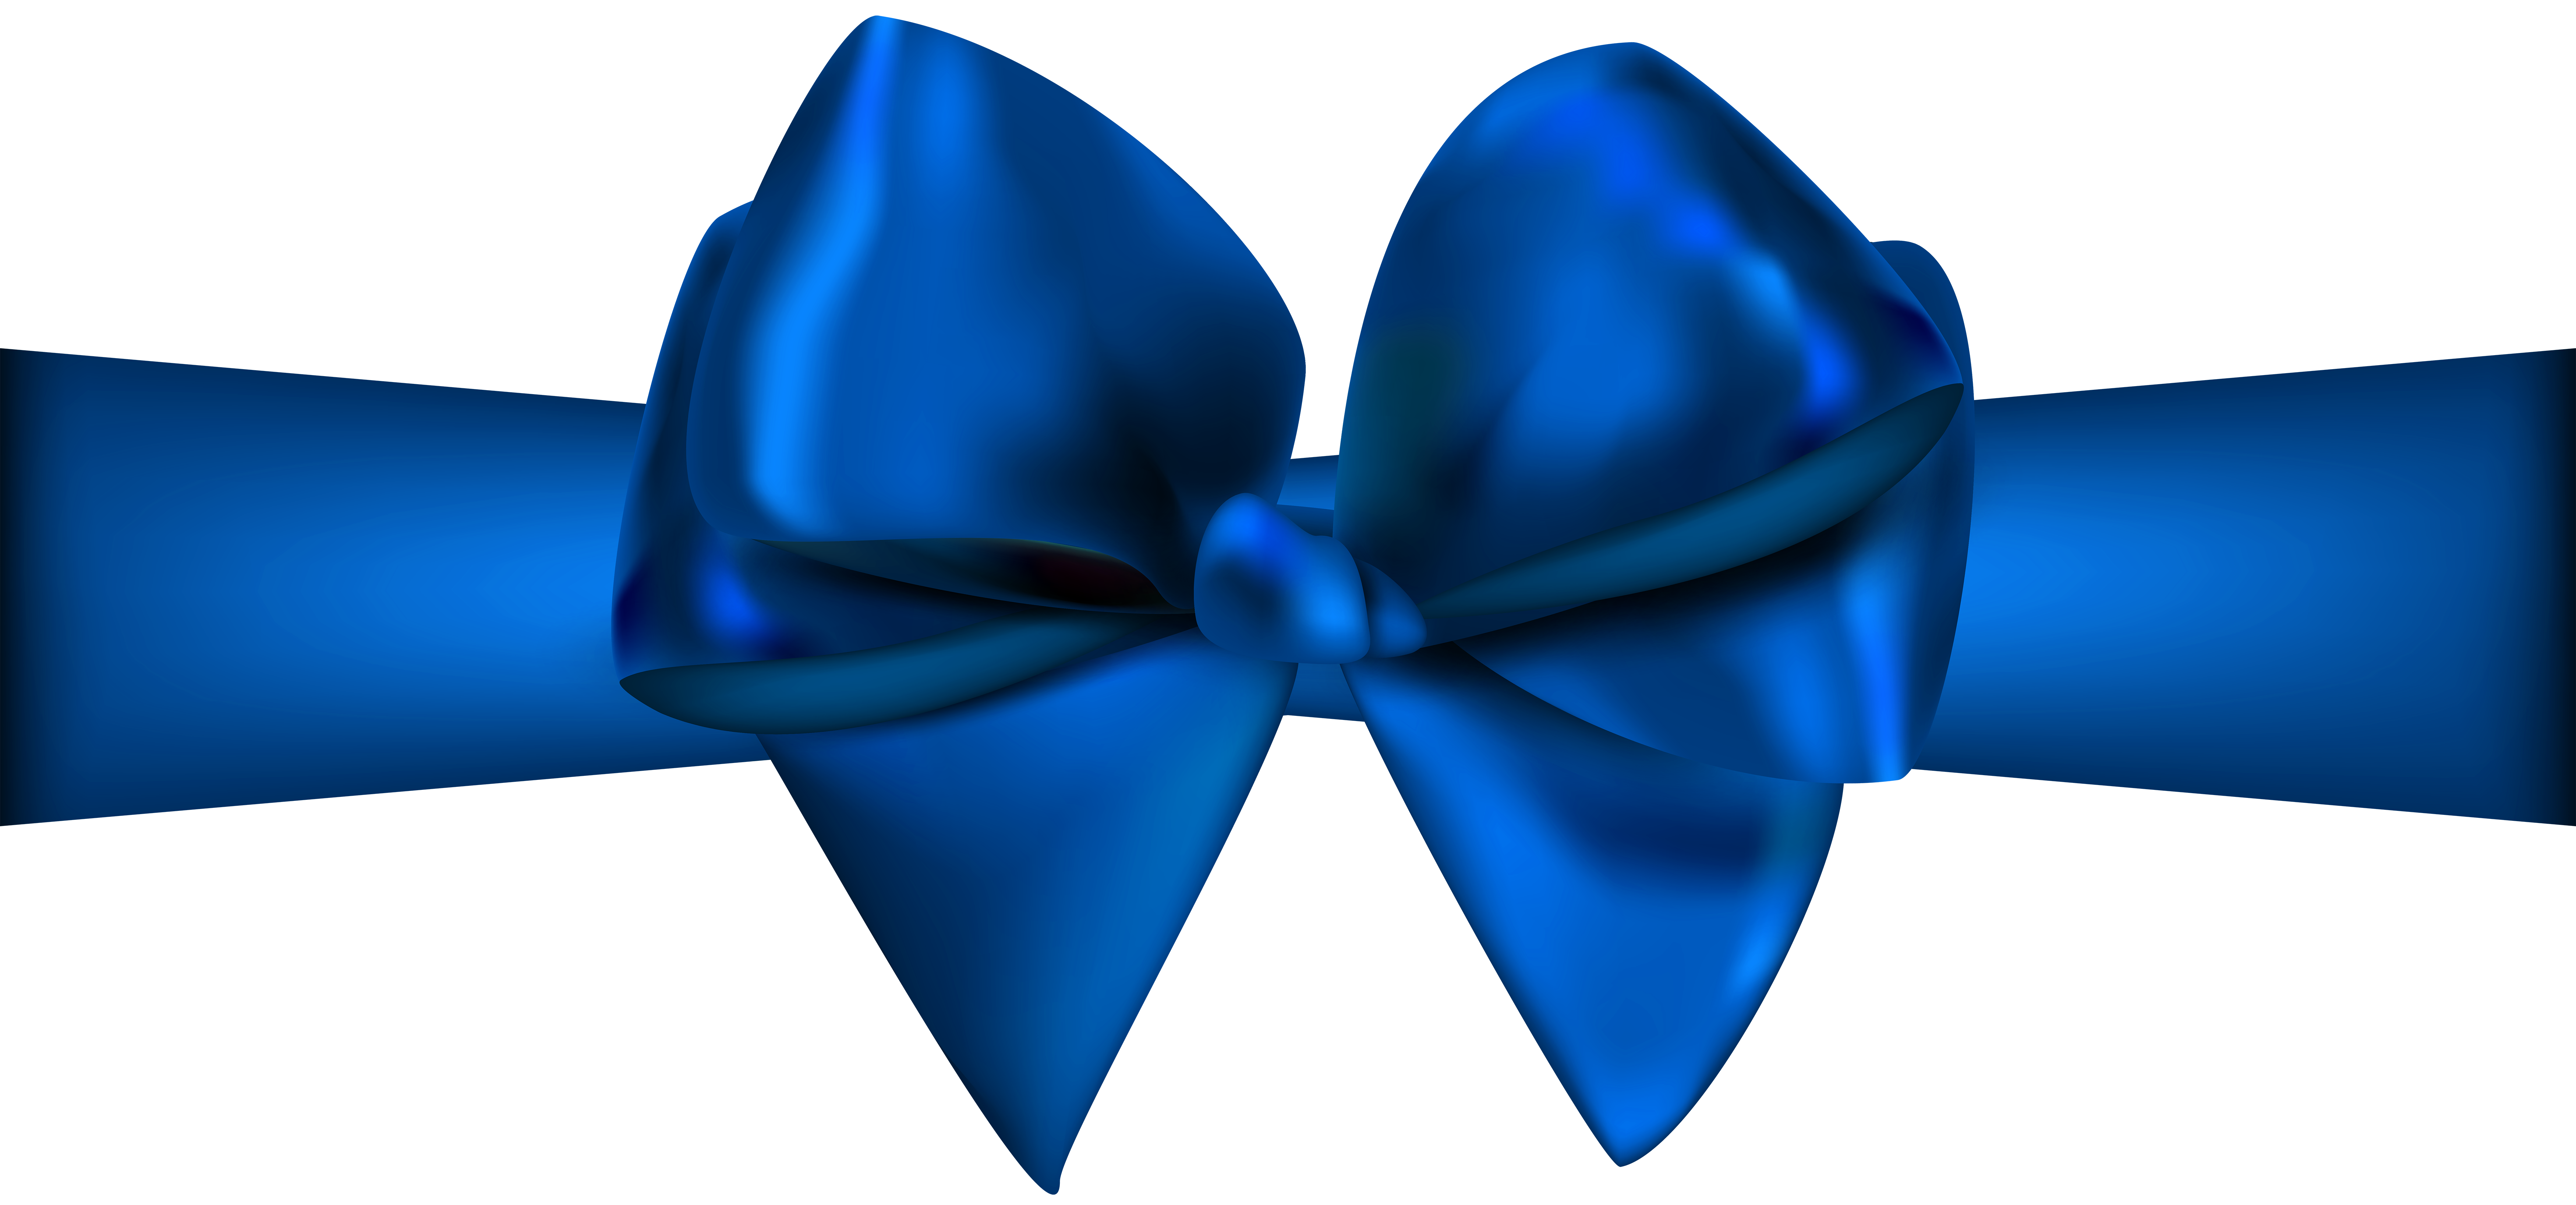 Flower clipart blue jasmine. Ribbon with bow png